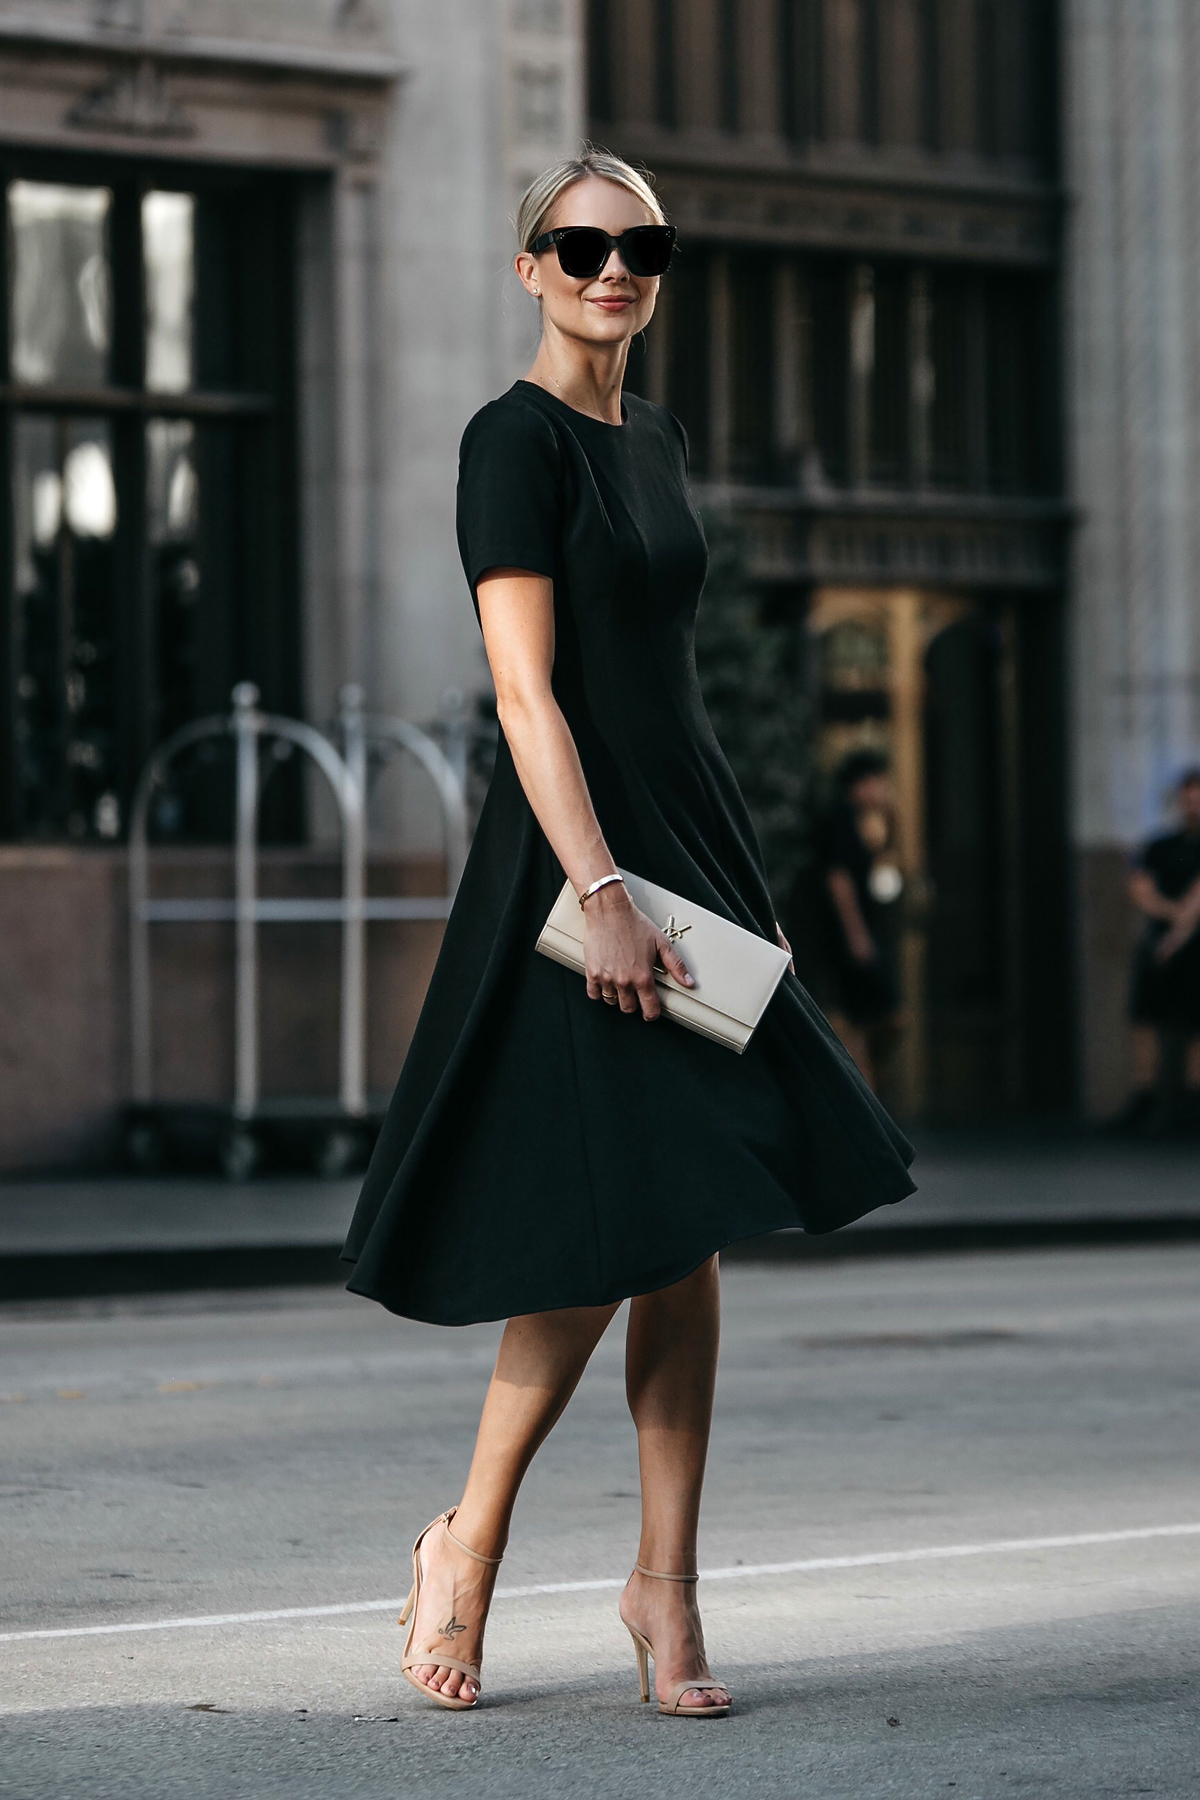 Blonde Woman Wearing Black Halo Asymmetrical Little Black Dress Steve Madden Stecy Ankle Strap Heels Saint Laurent Nude Clutch Fashion Jackson Dallas Blogger Fashion Blogger Street Style